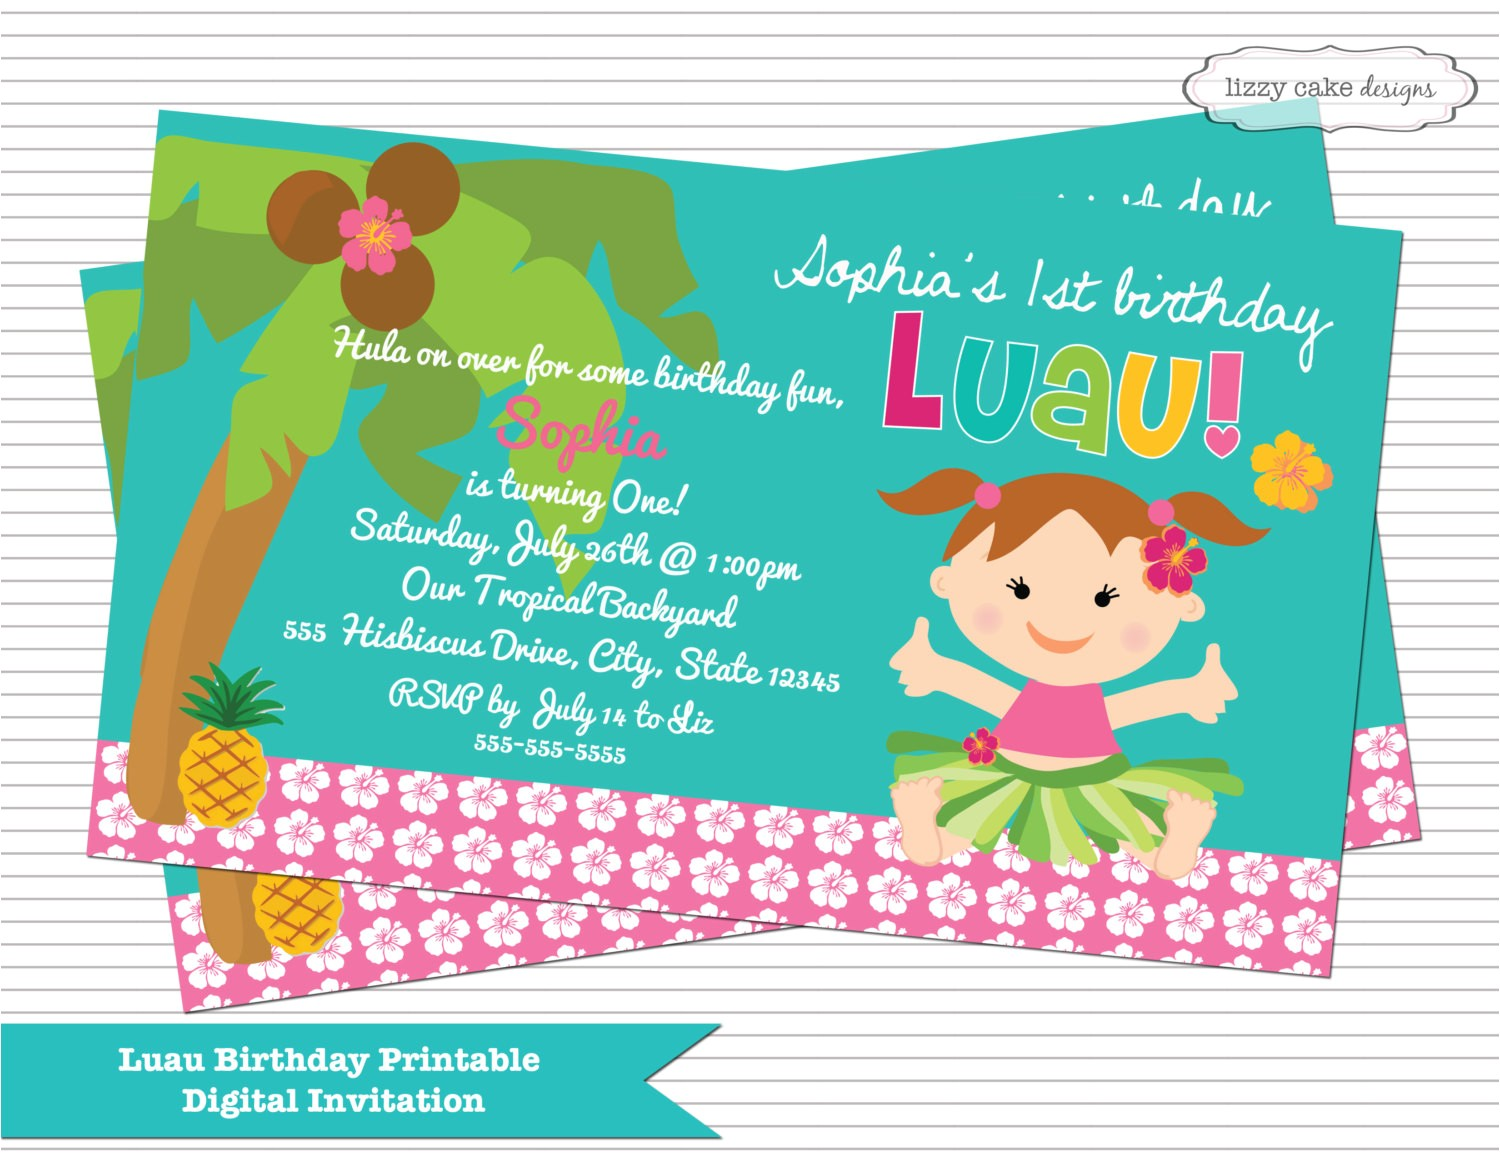 luau invitations luau invitation template lake party invitation templates free